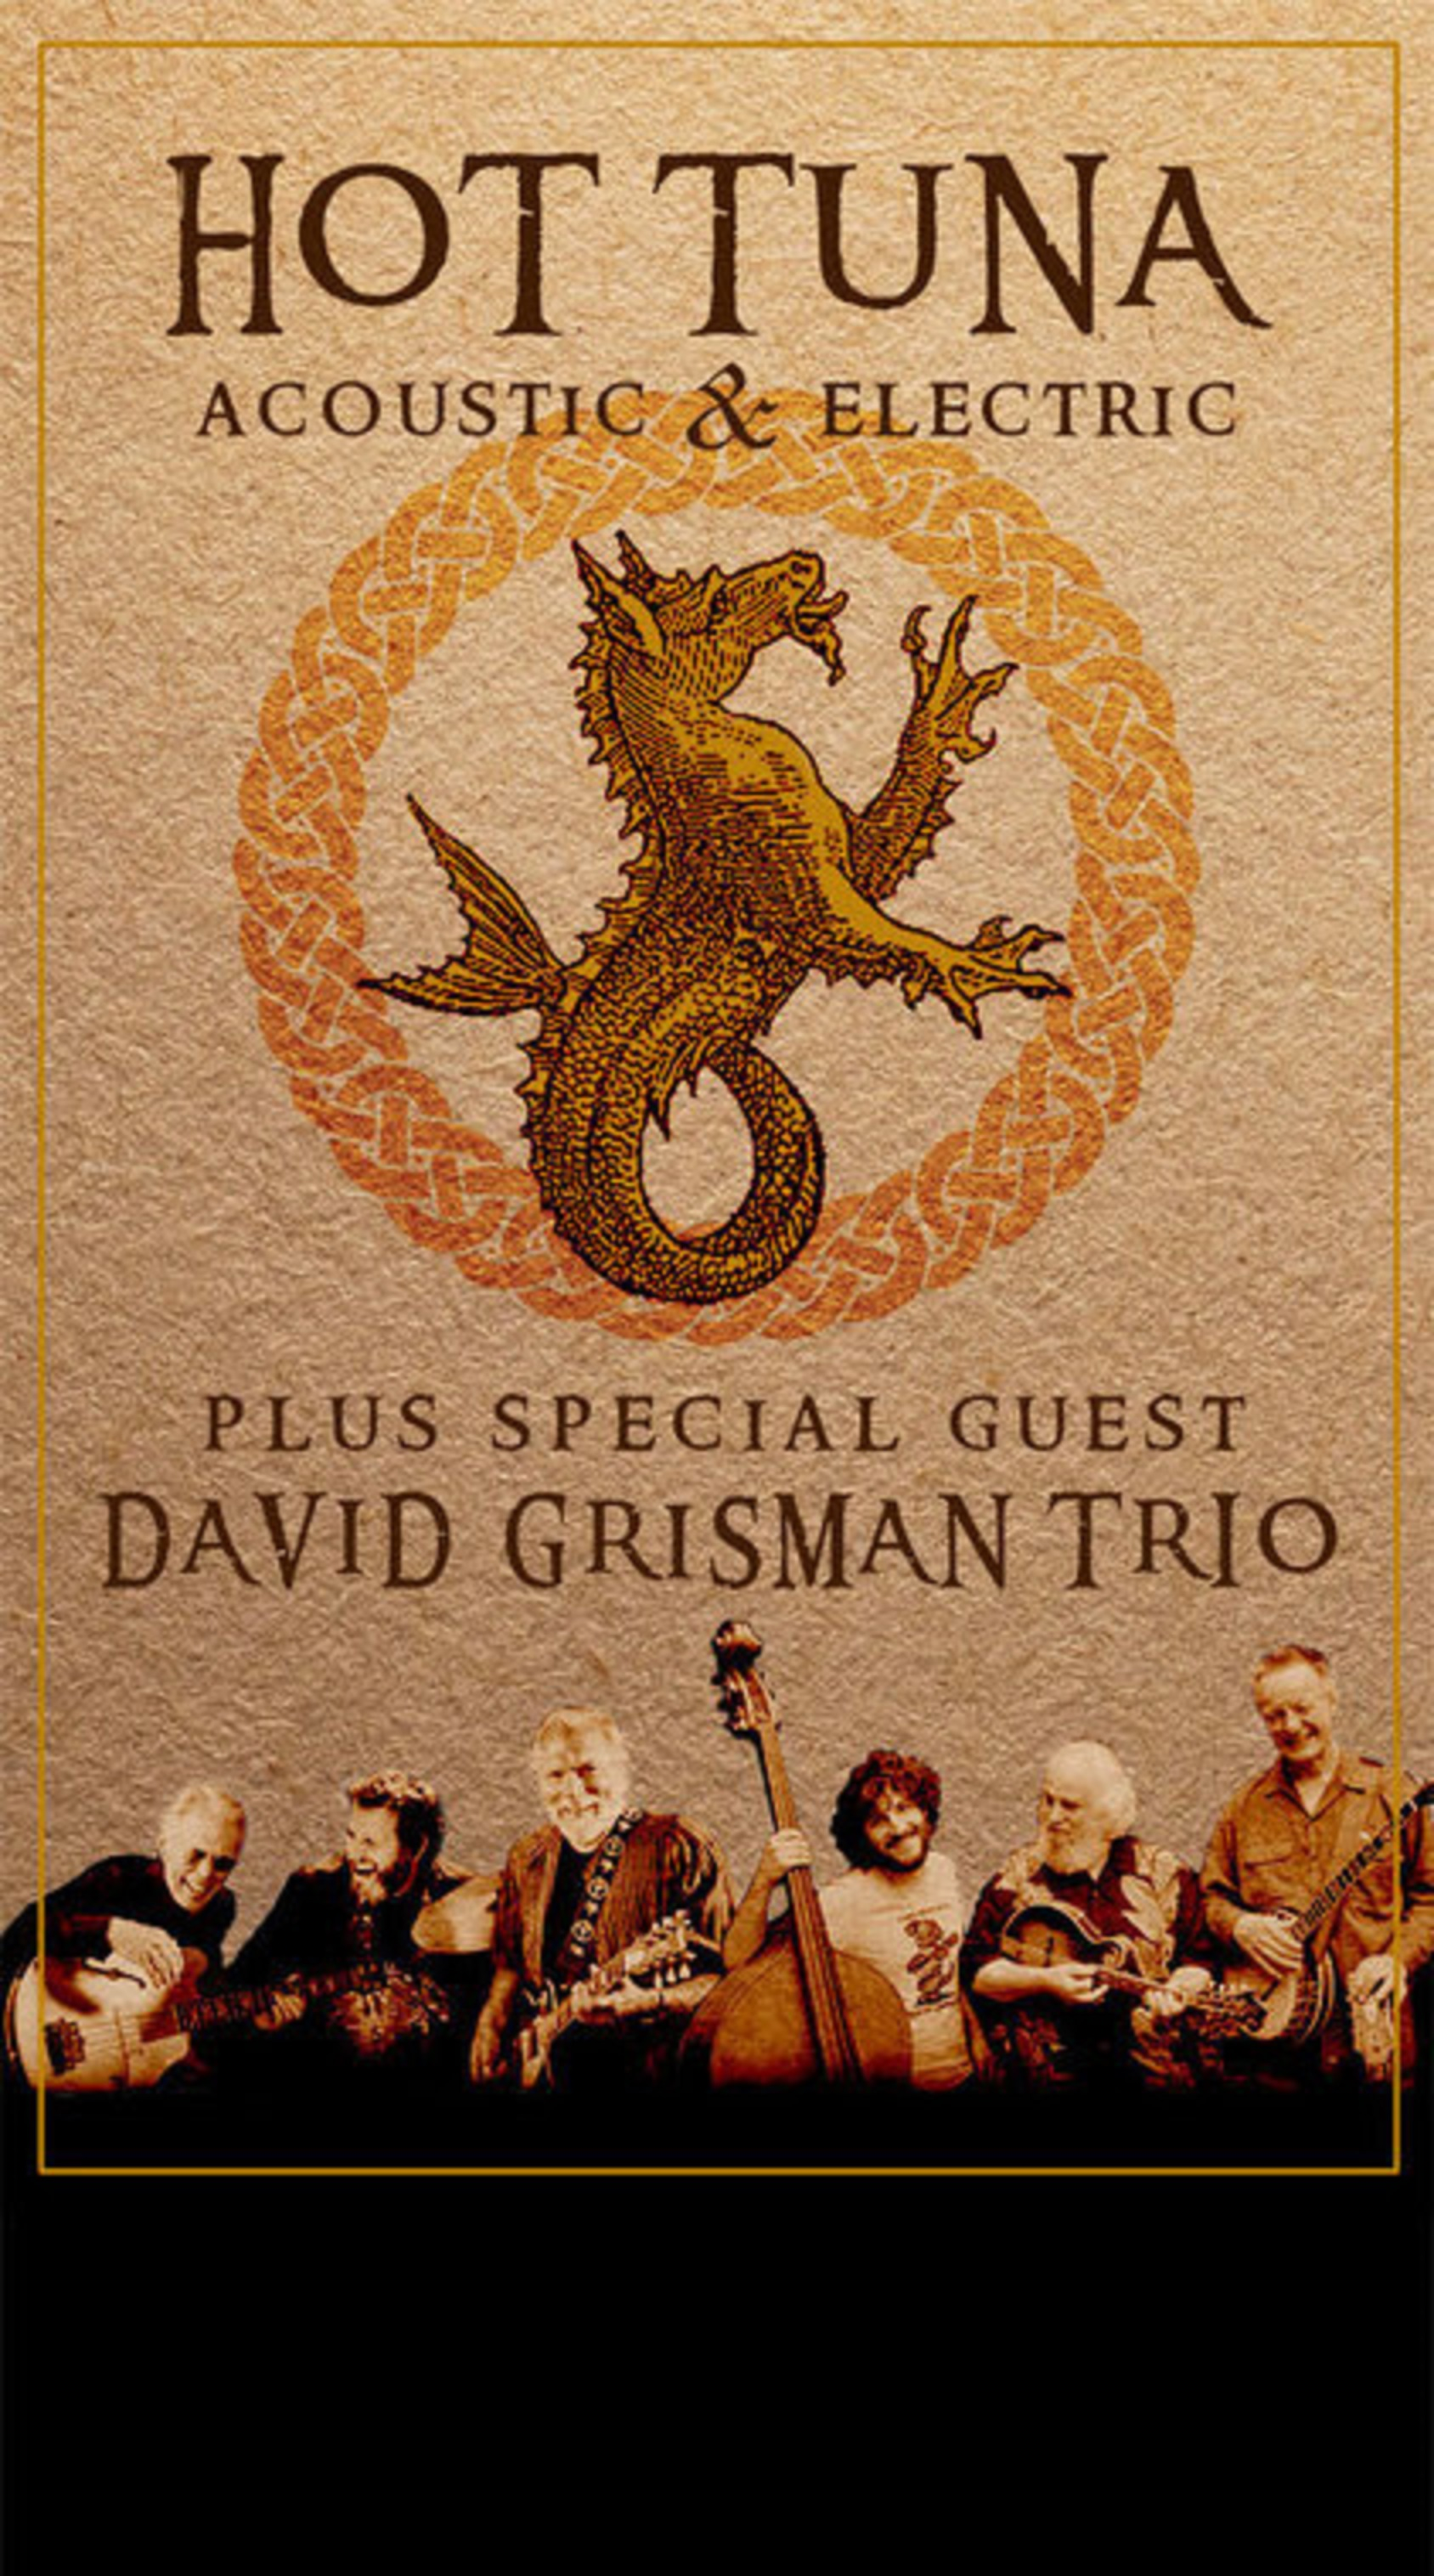 Hot Tuna + David Grisman Trio on Tour this Fall!